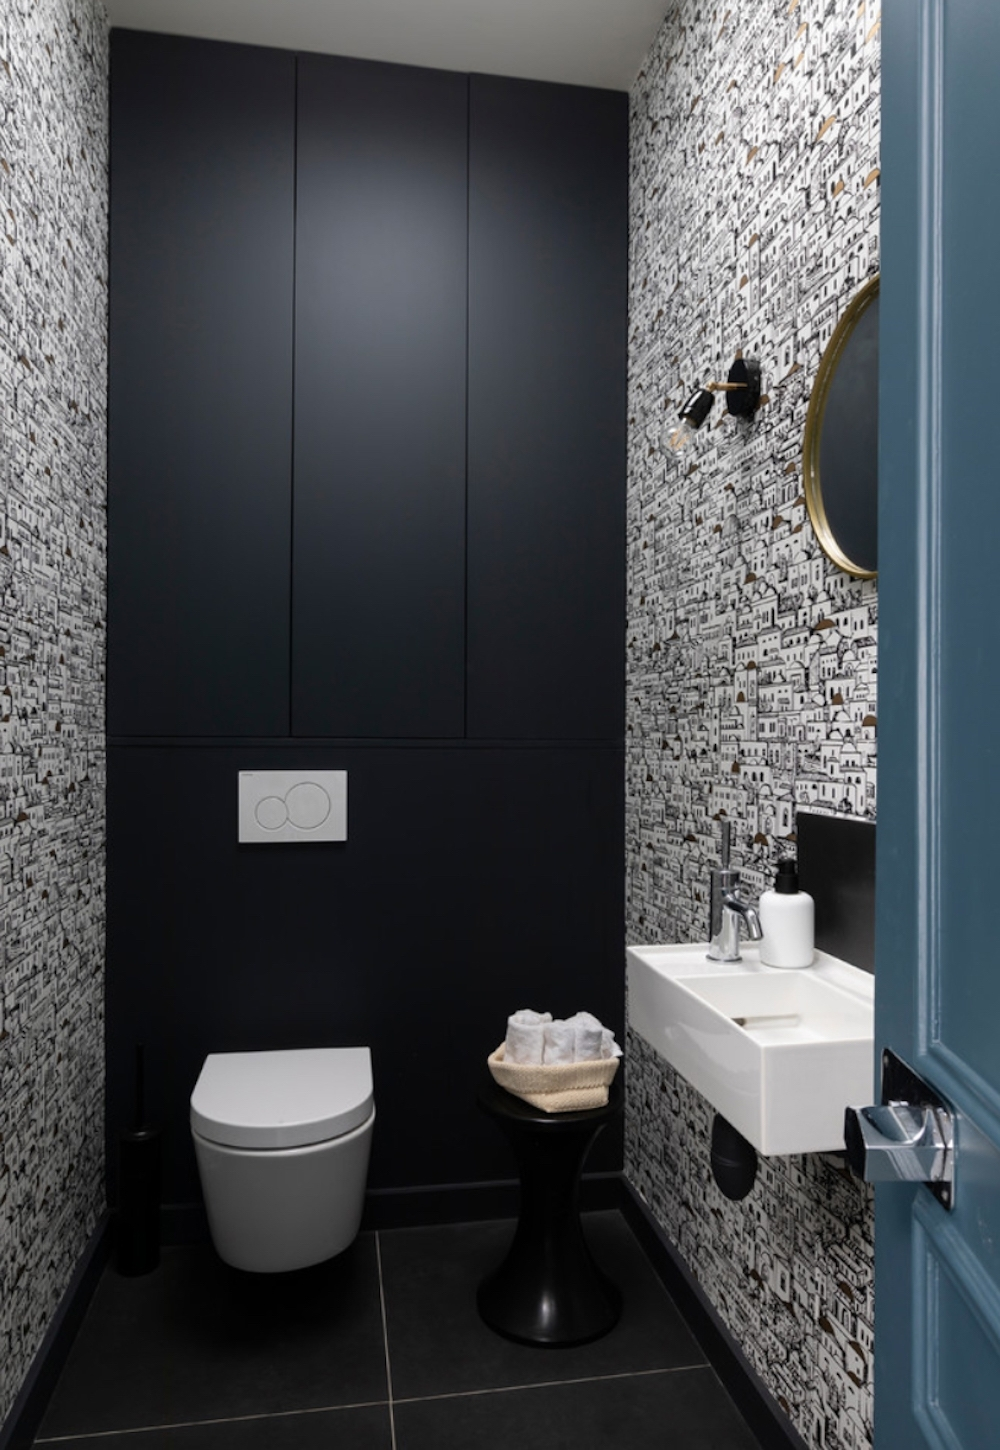 15 Small Cloakrooms That Are Big On Style First Sense Cloakroom Bathroom